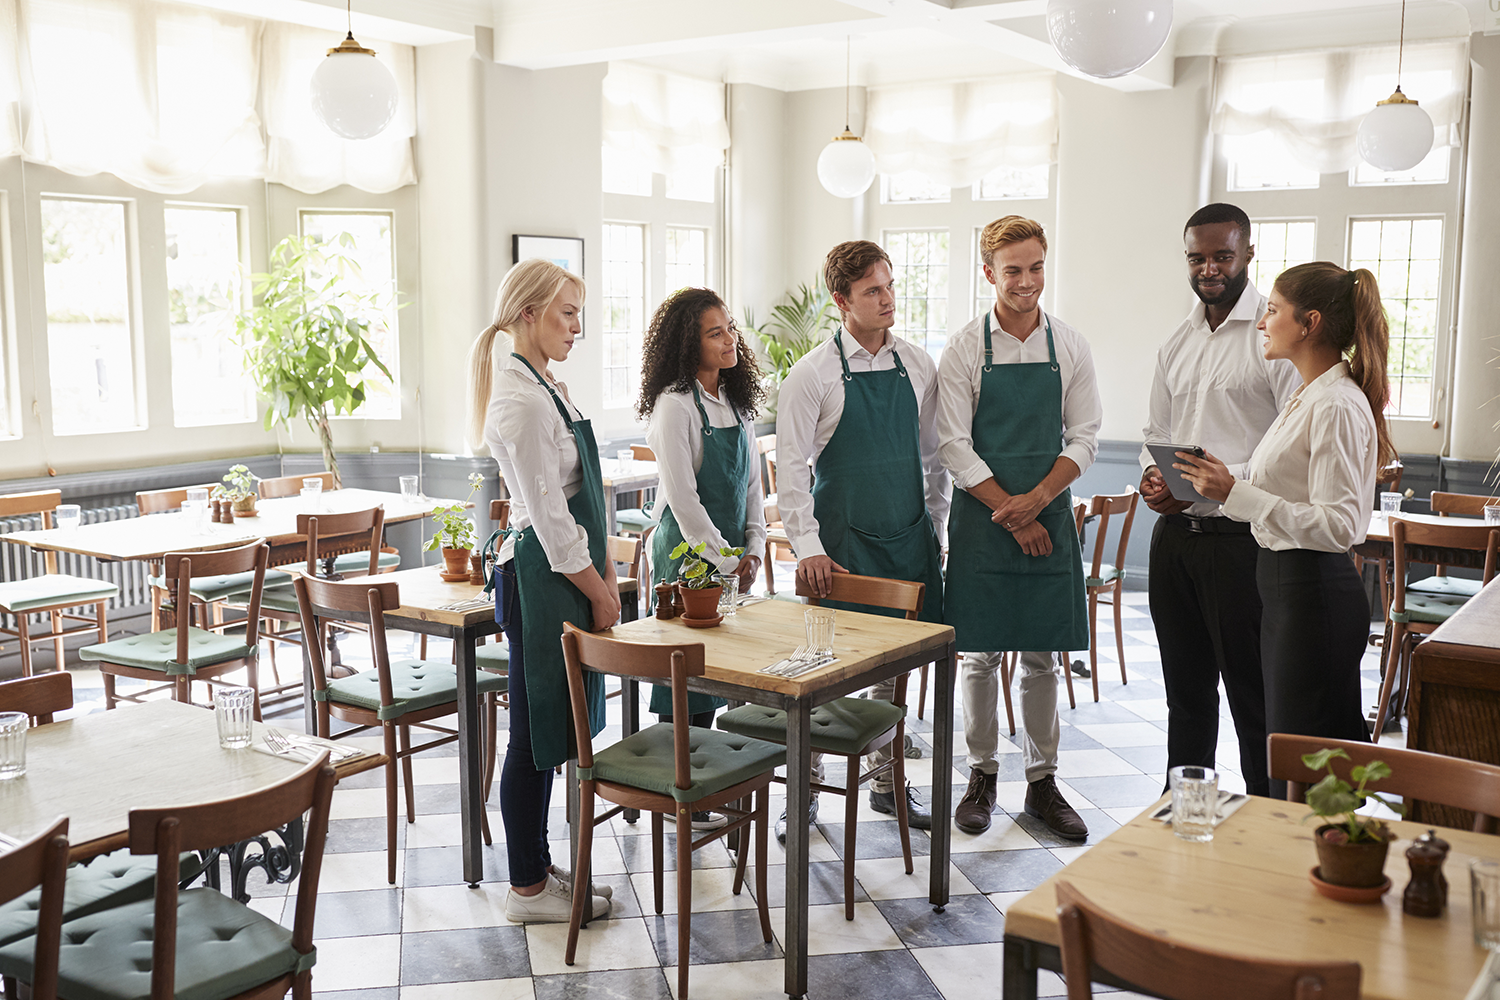 Restaurant managers need to bond with their employees.